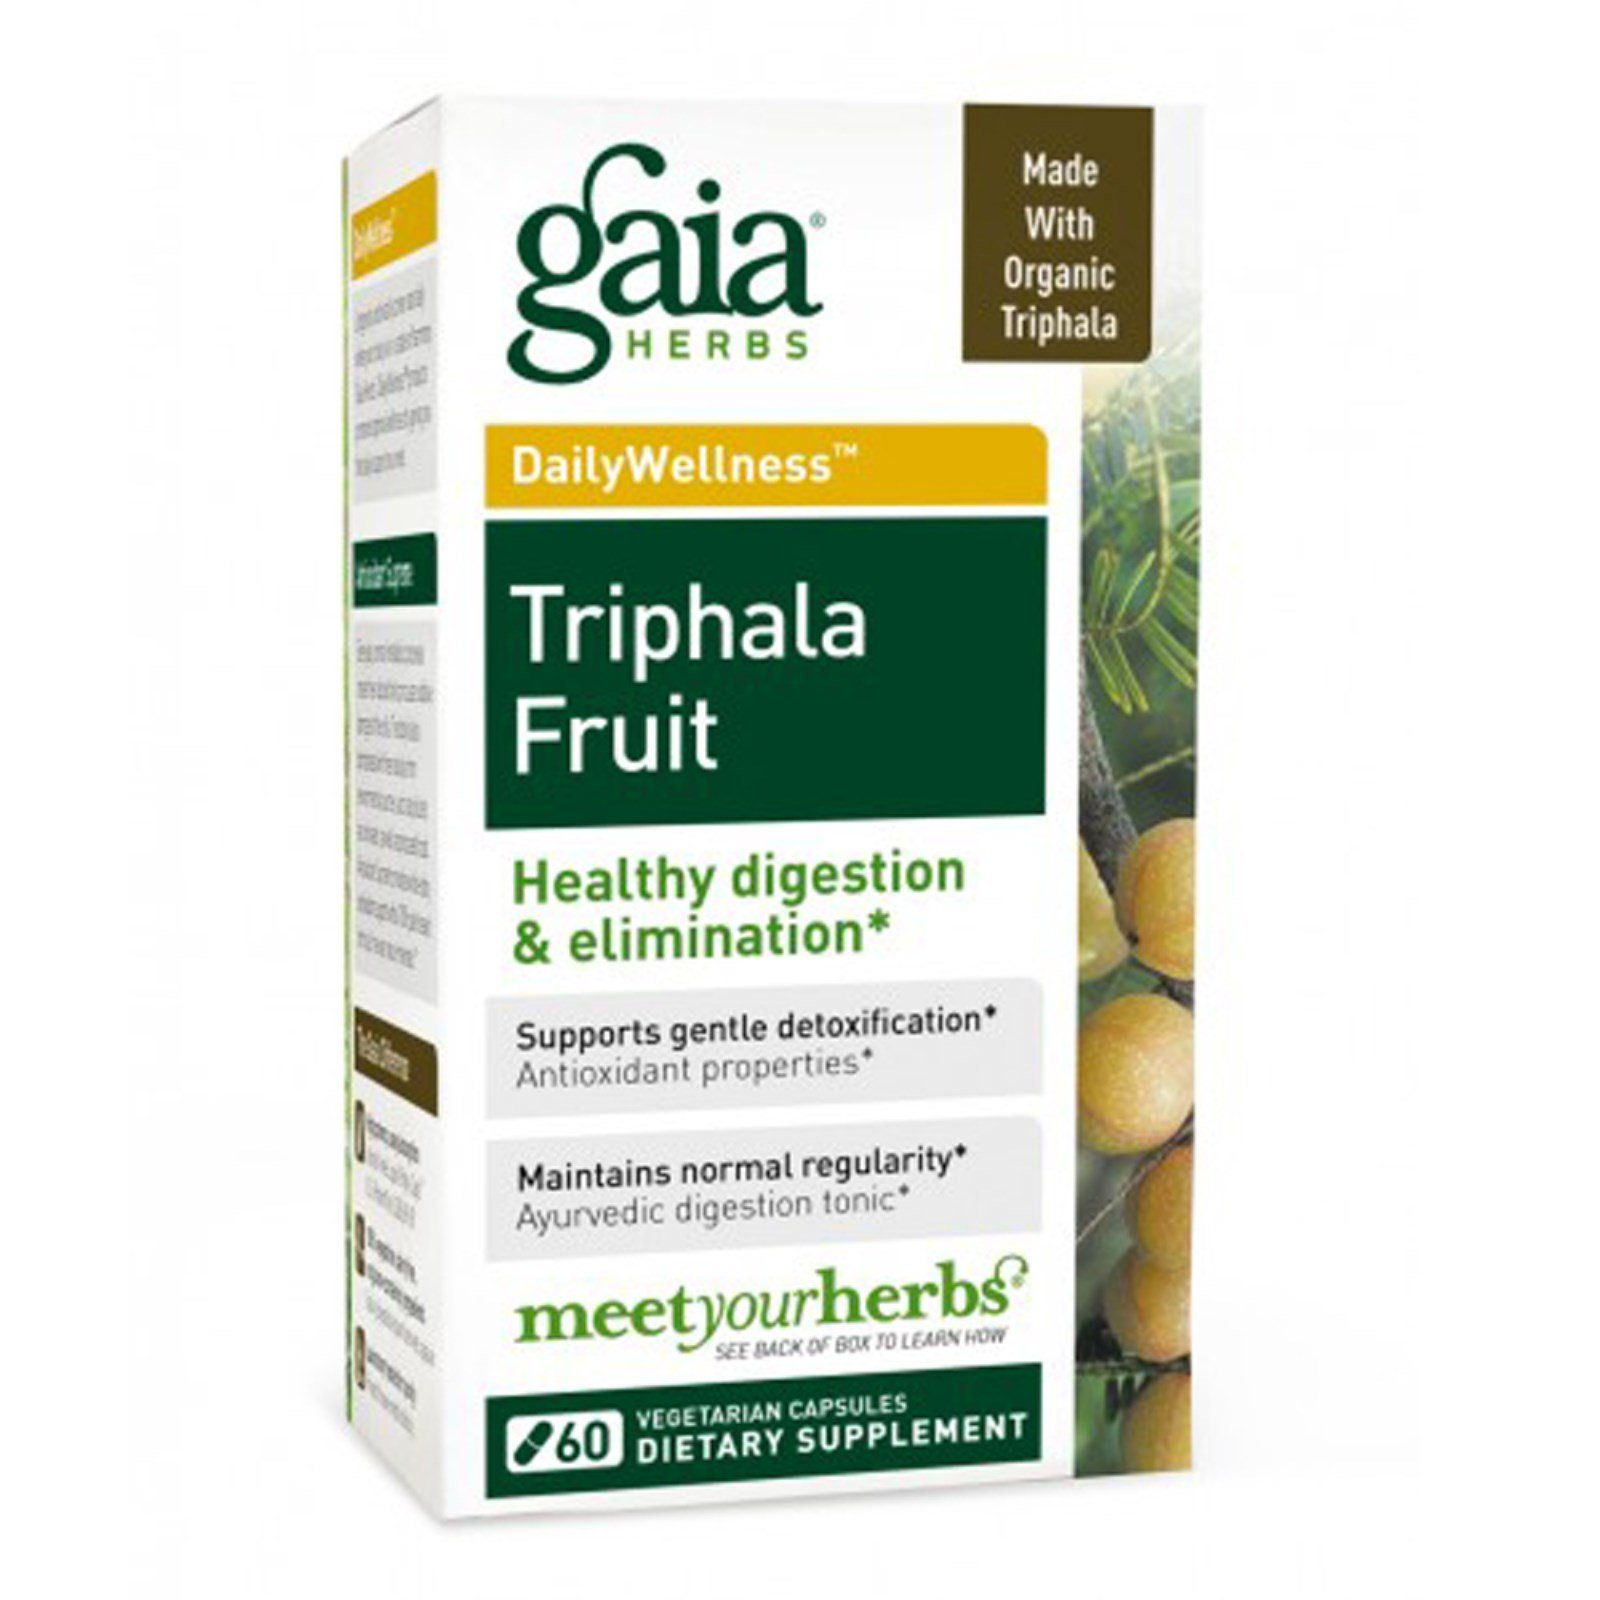 Gaia Herbs, Triphala Fruit, 60 Veggie Caps - 2pc